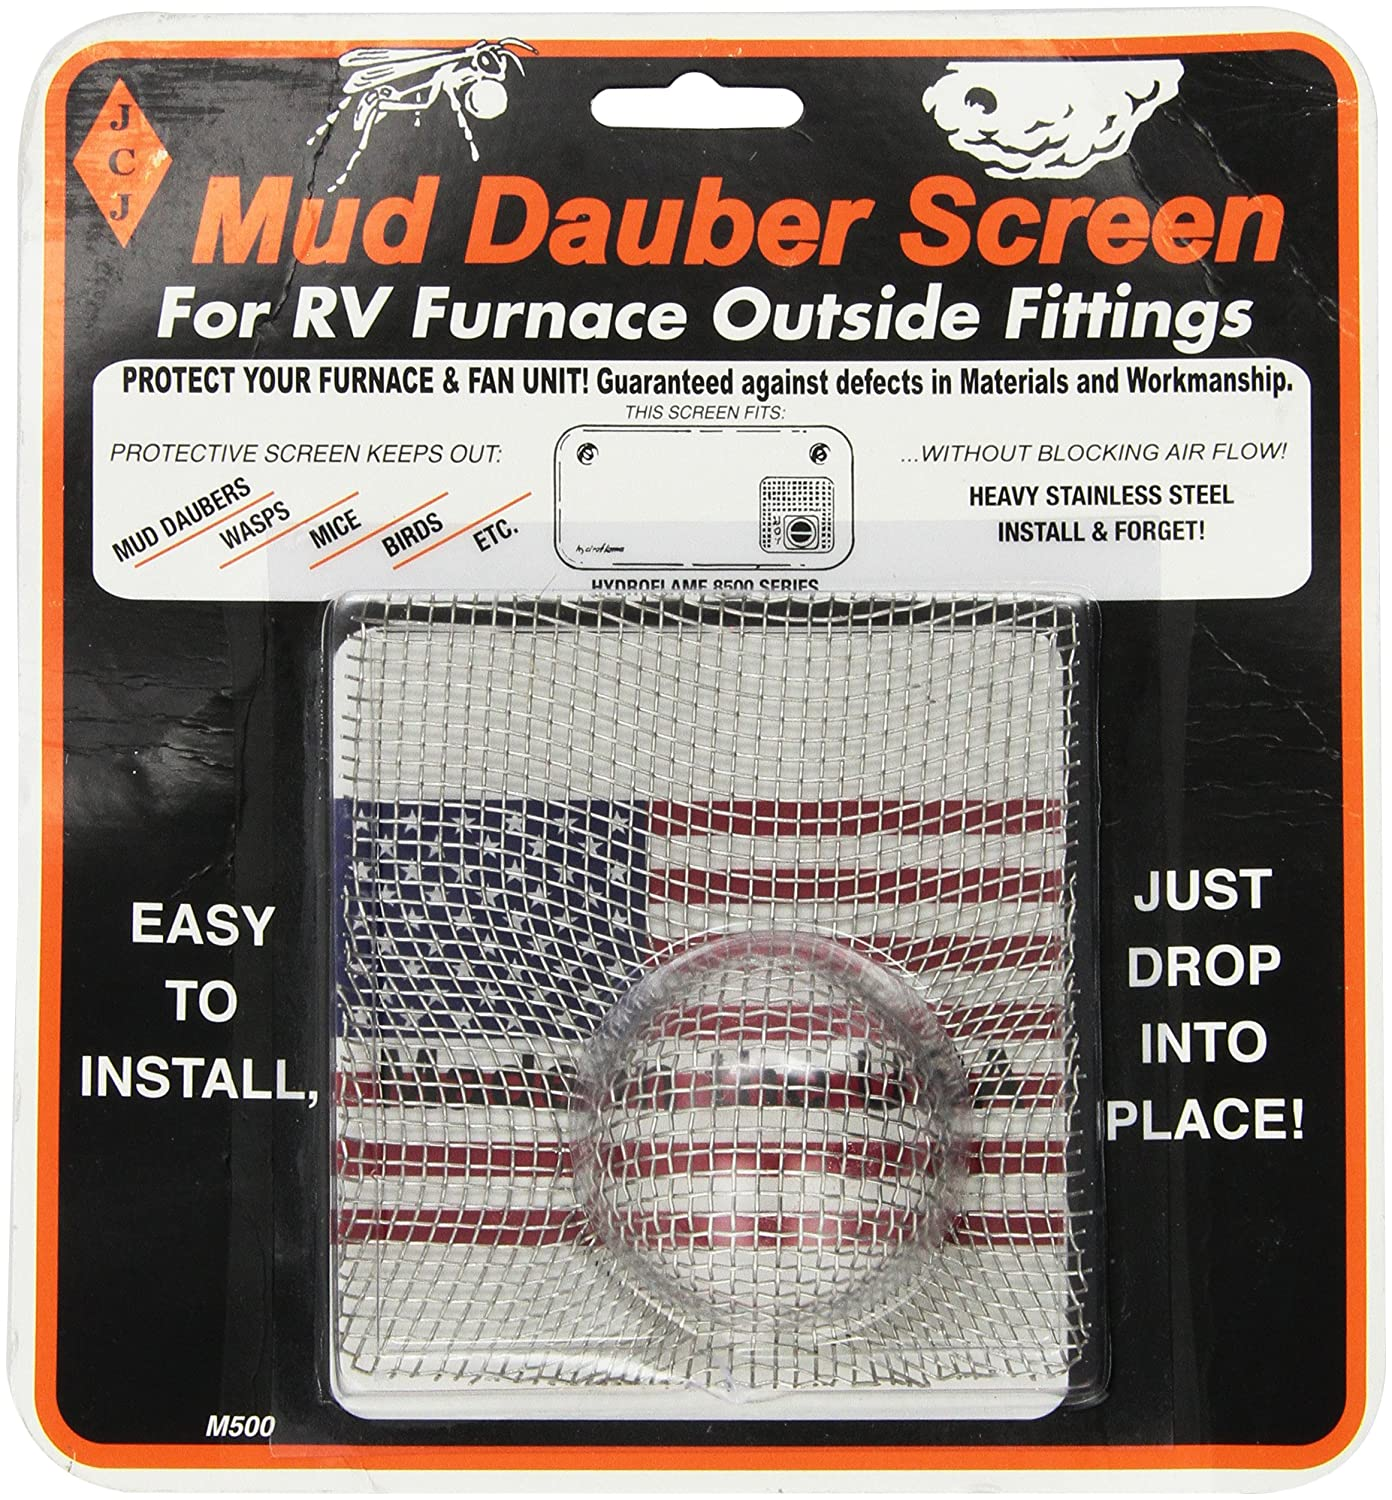 JCJ M-500 Mud Dauber Screen for RV furnace Outside Fitting